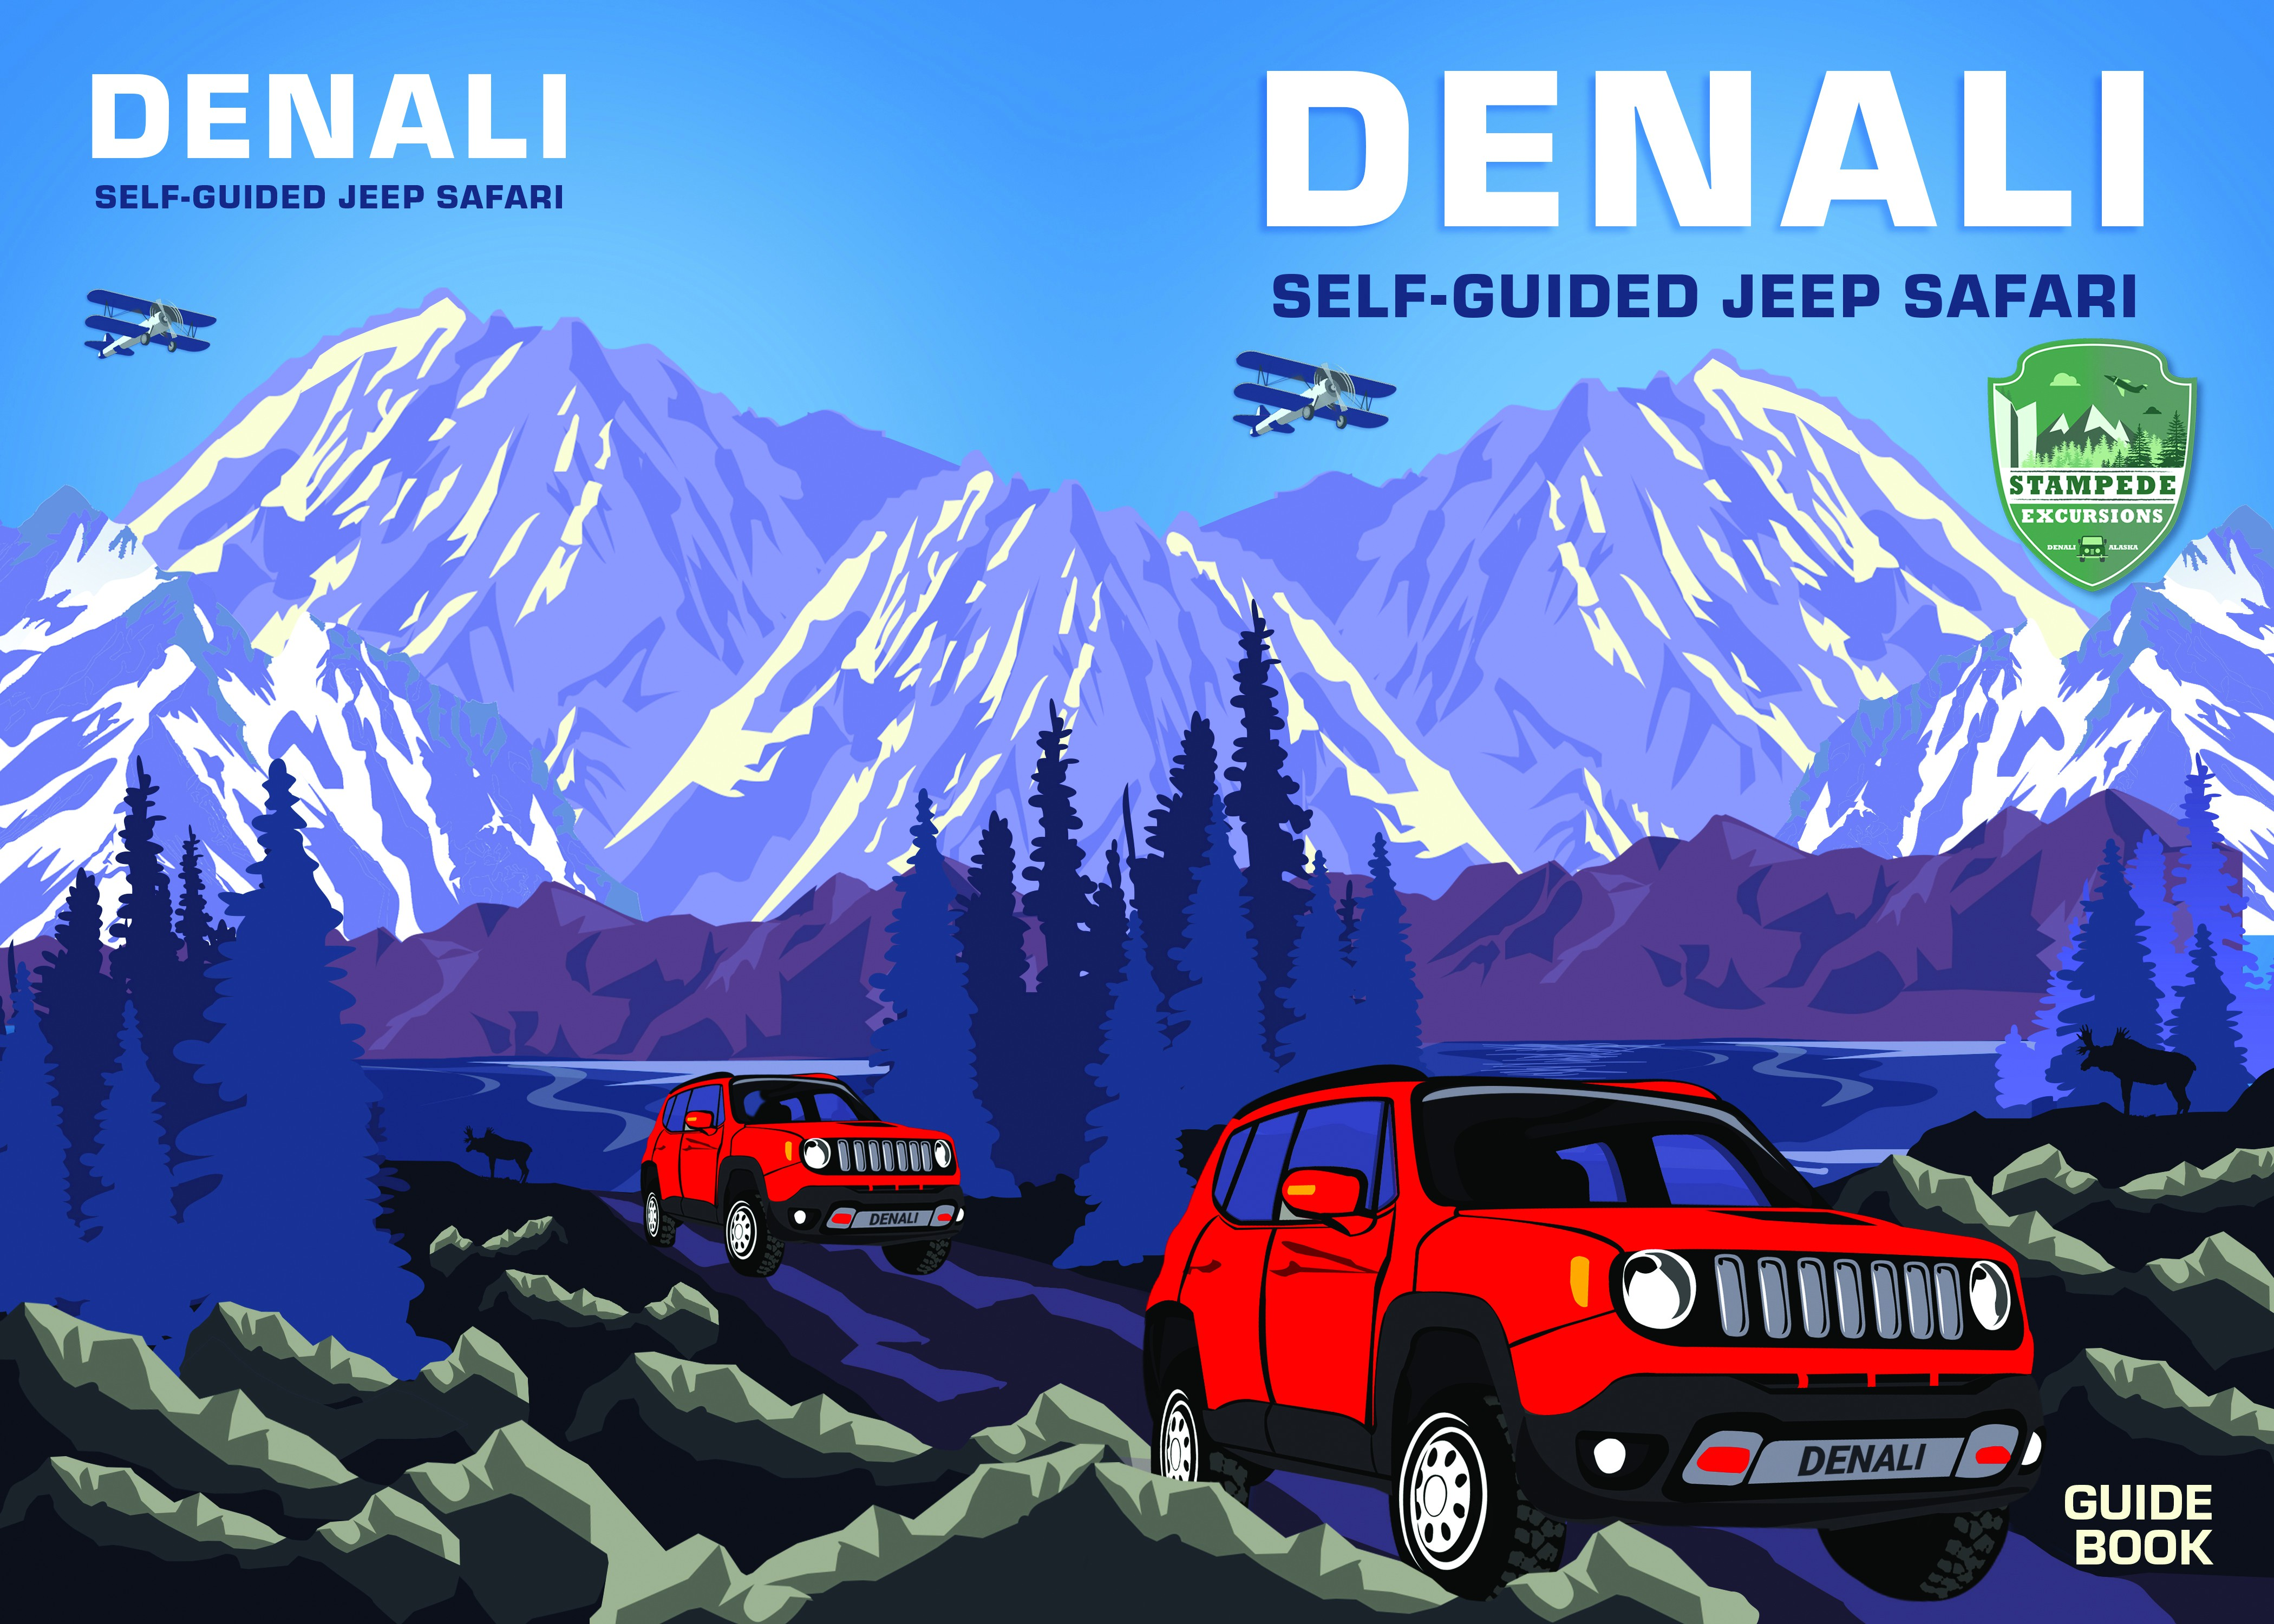 Denali Guidebook Cover